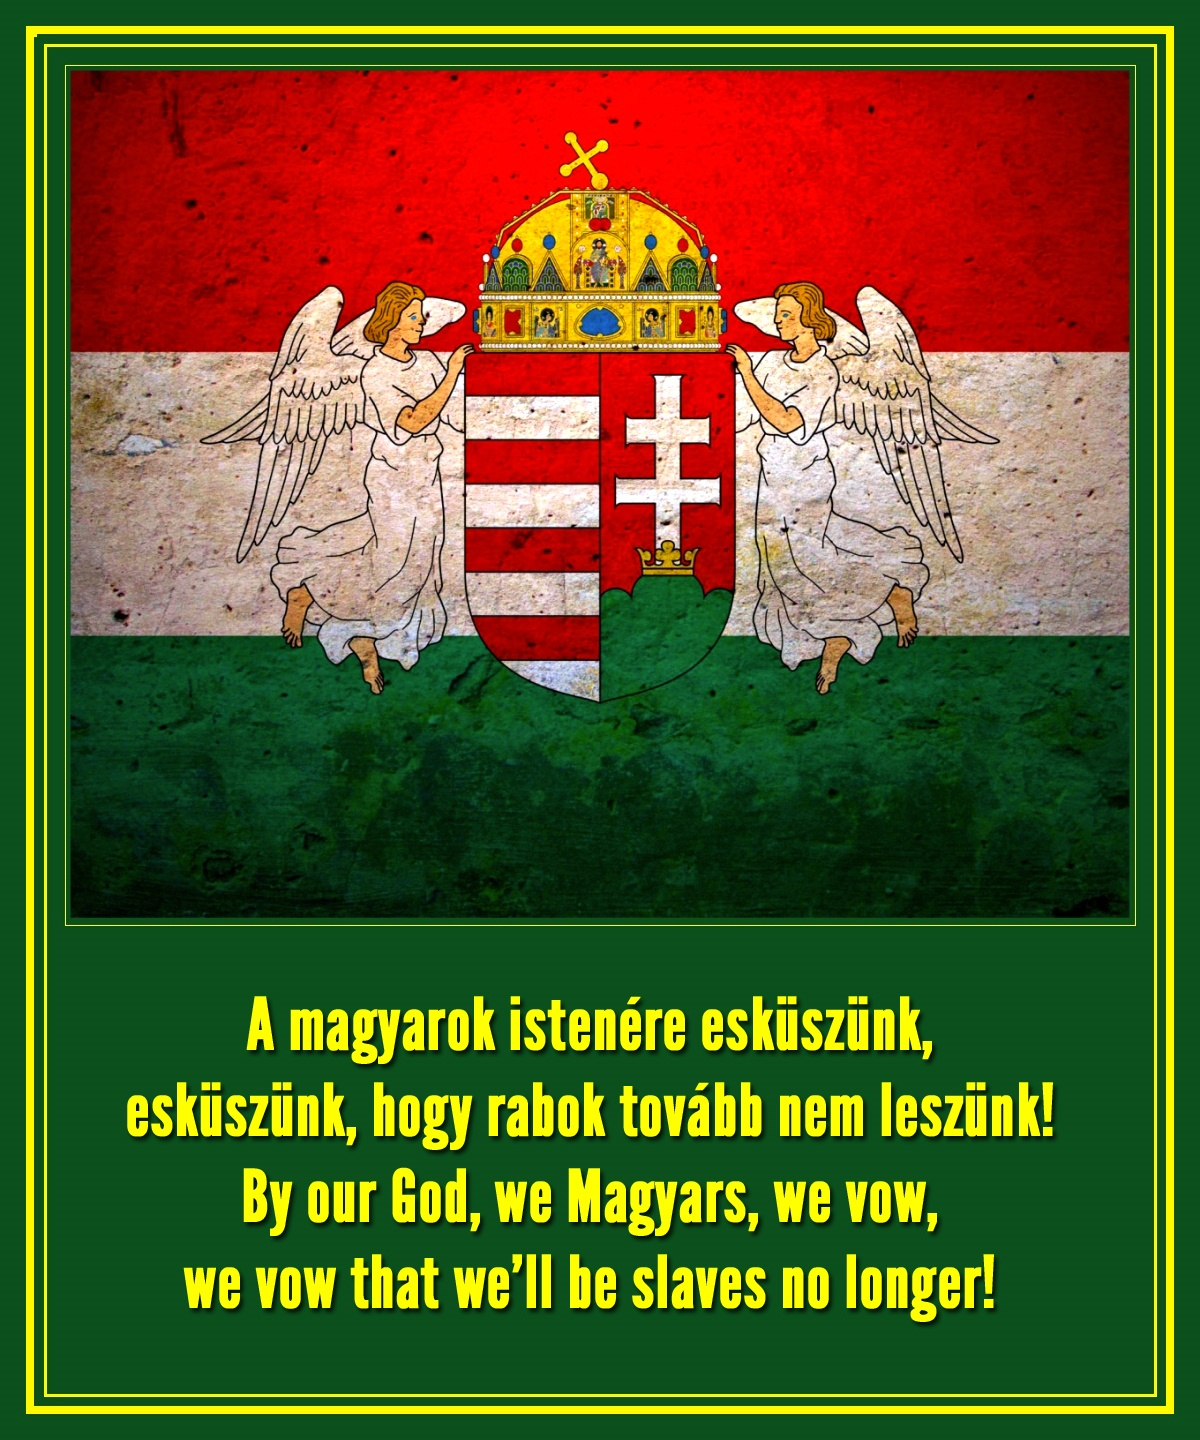 00 Hungarian National Poem. We'll Not be Slaves! 29.10.14.